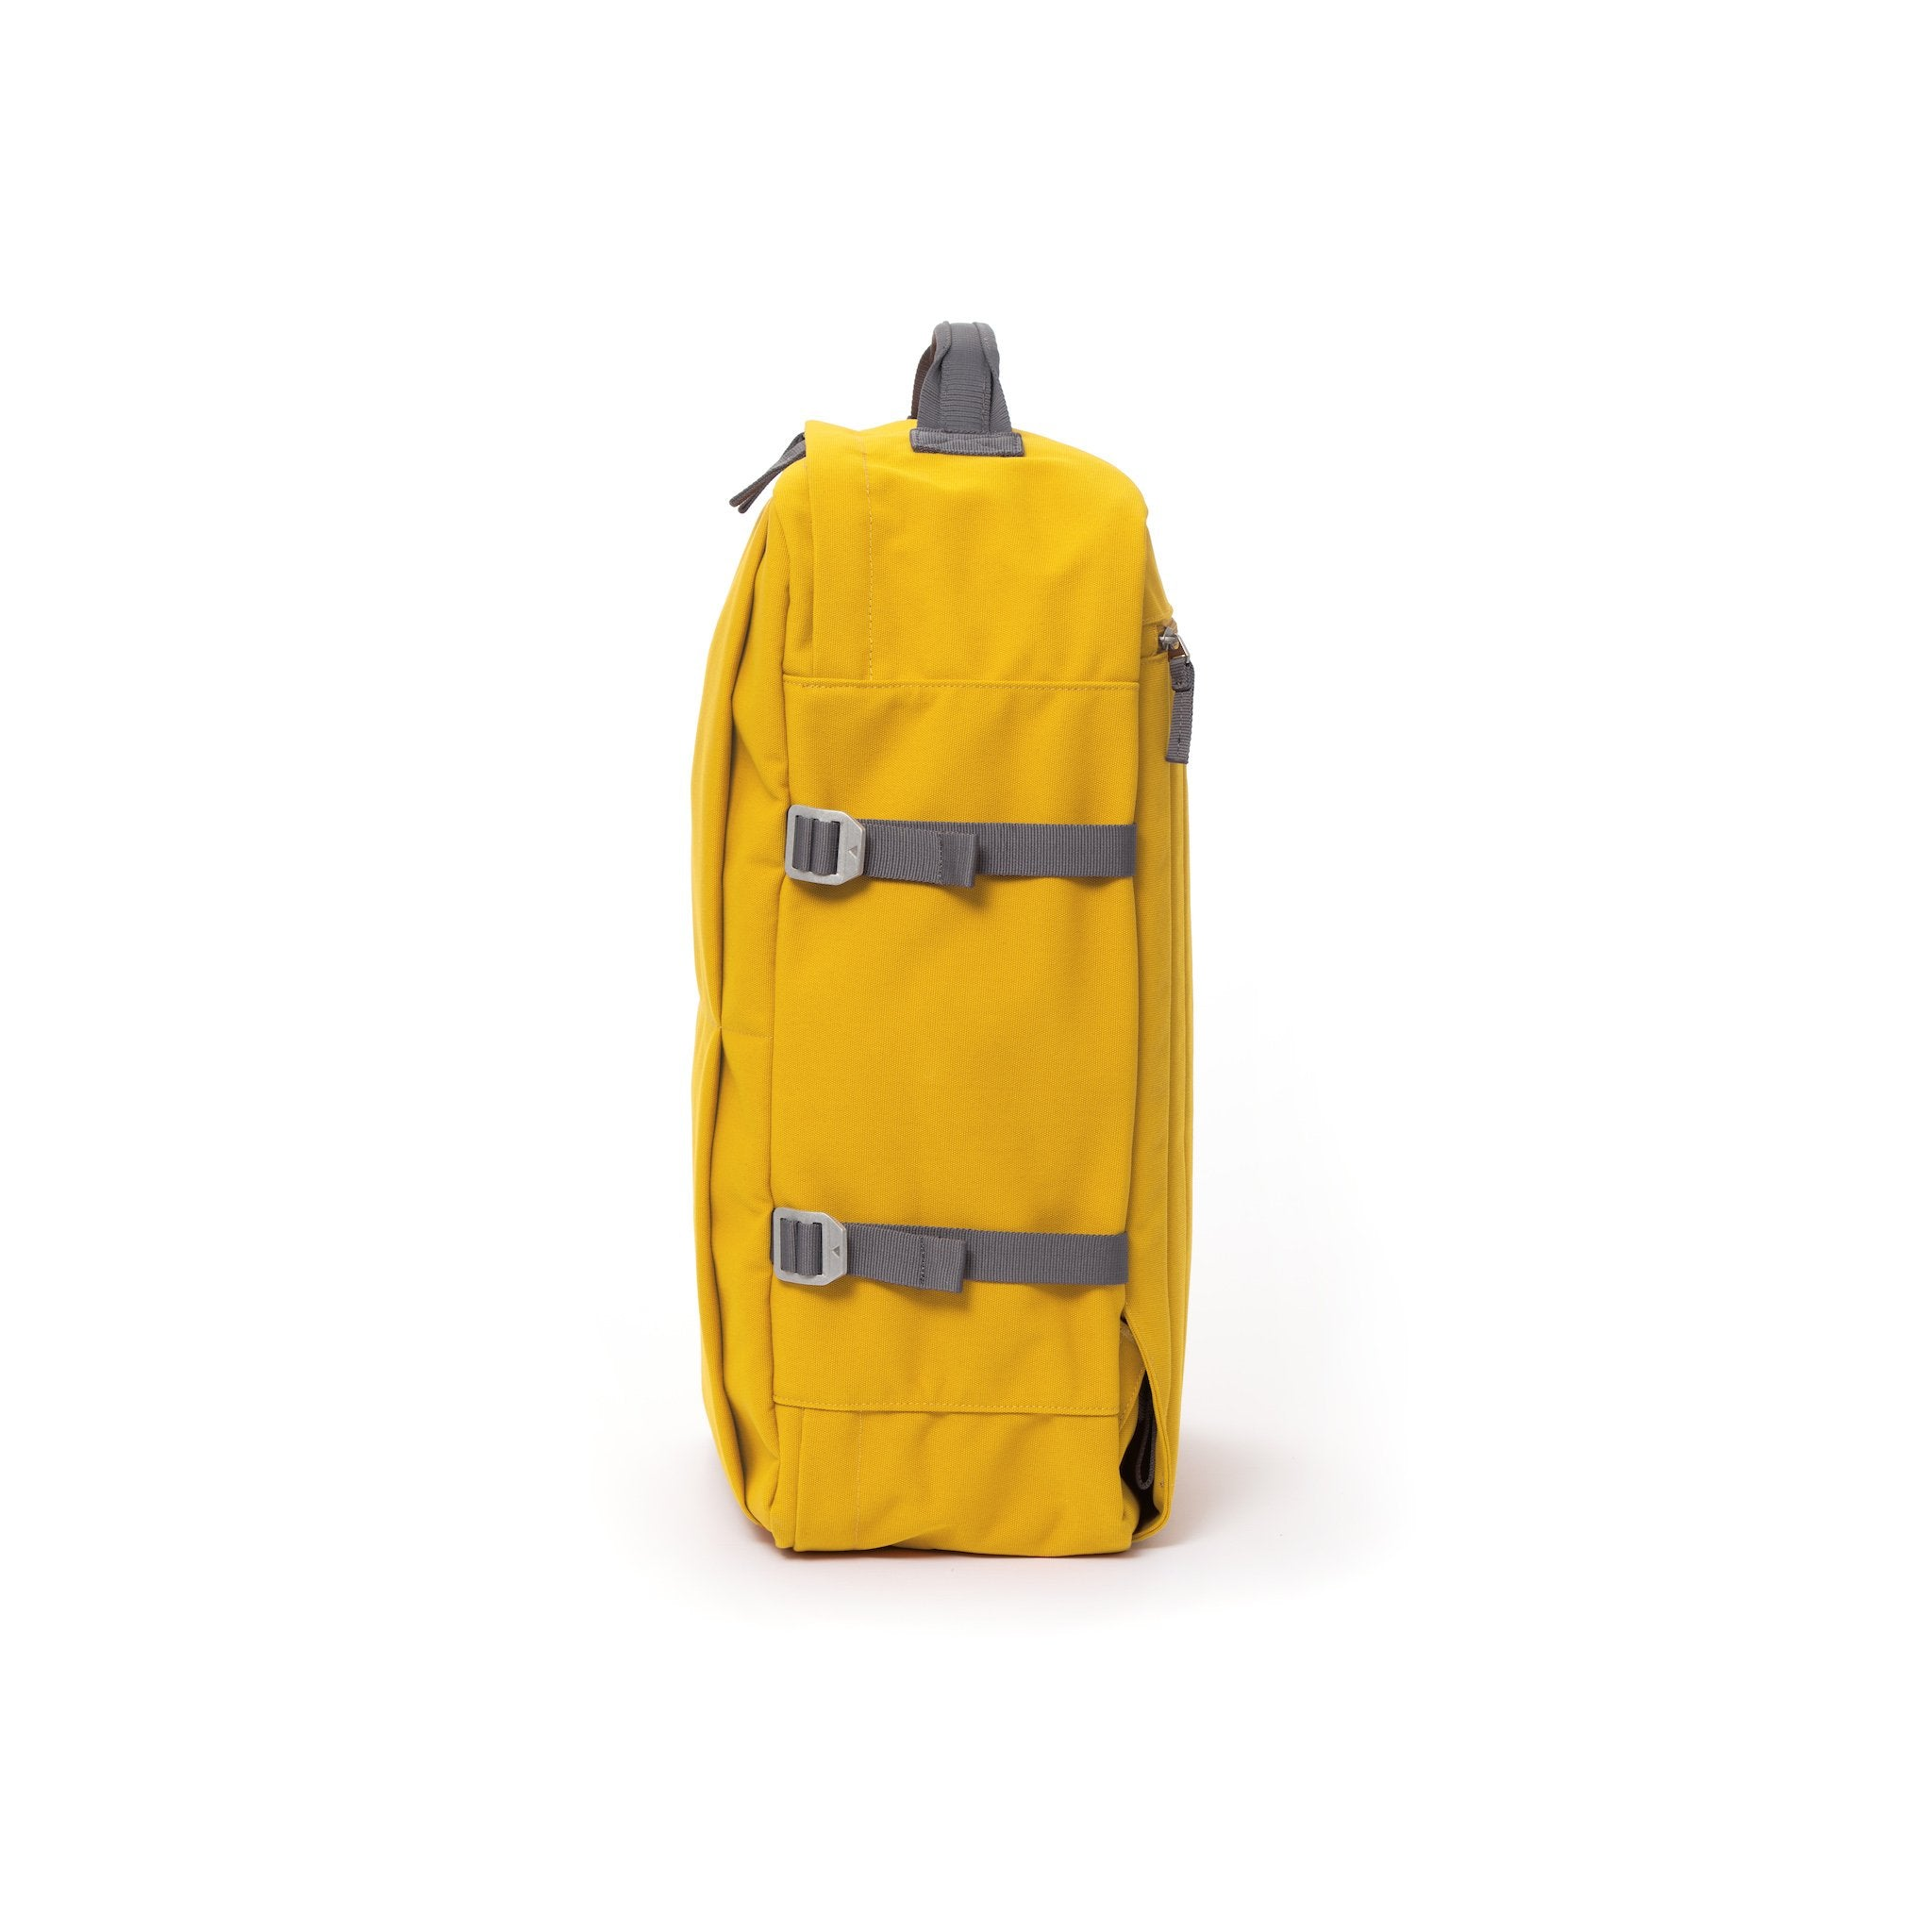 Yellow waterproof canvas travel backpack with compression side straps.